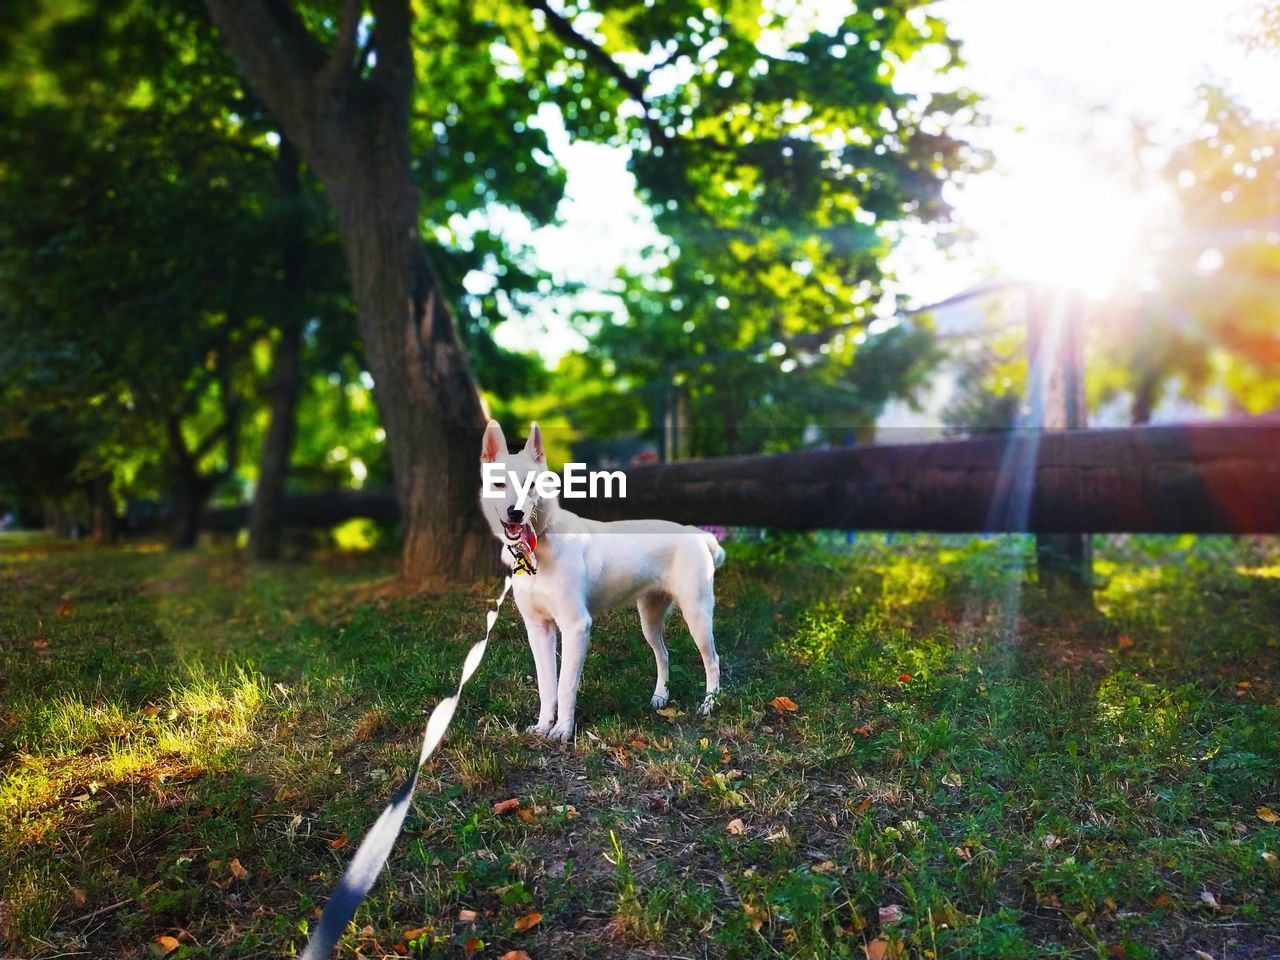 domestic, one animal, pets, mammal, canine, dog, domestic animals, animal themes, animal, tree, plant, vertebrate, nature, land, sunlight, no people, field, leash, day, pet leash, lens flare, mouth open